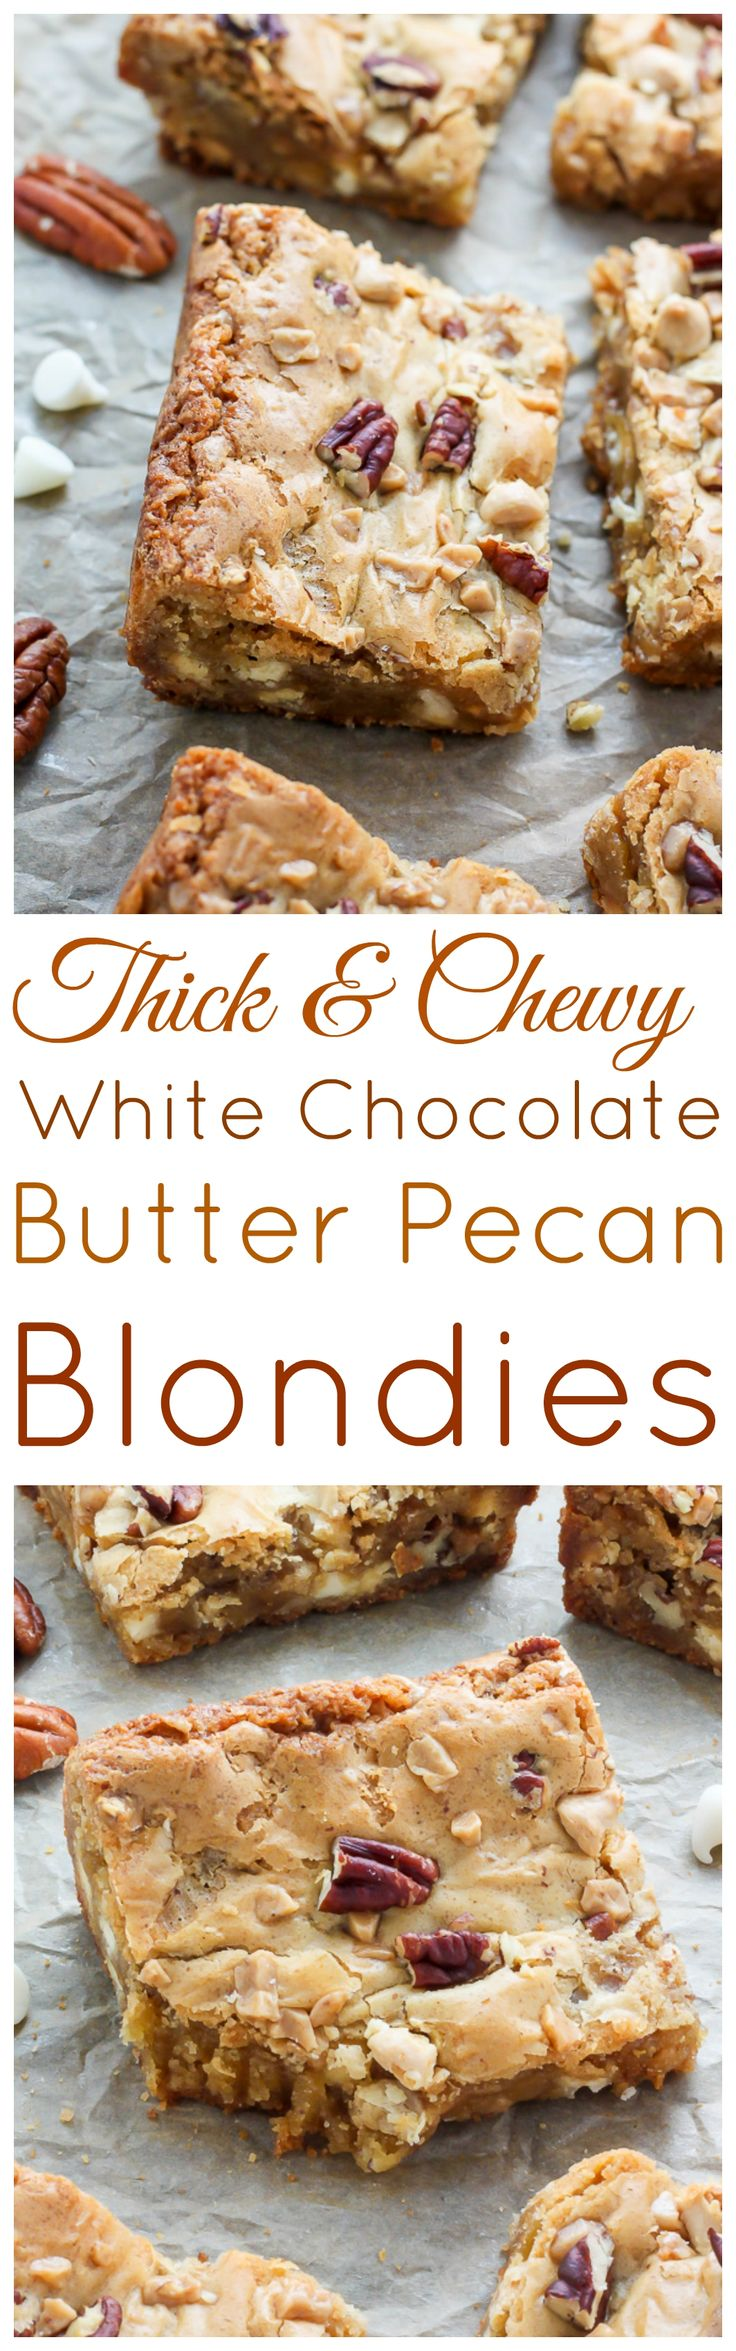 ... Pecan Blondies | Recipe | Butter, White chocolate and Butter pecan